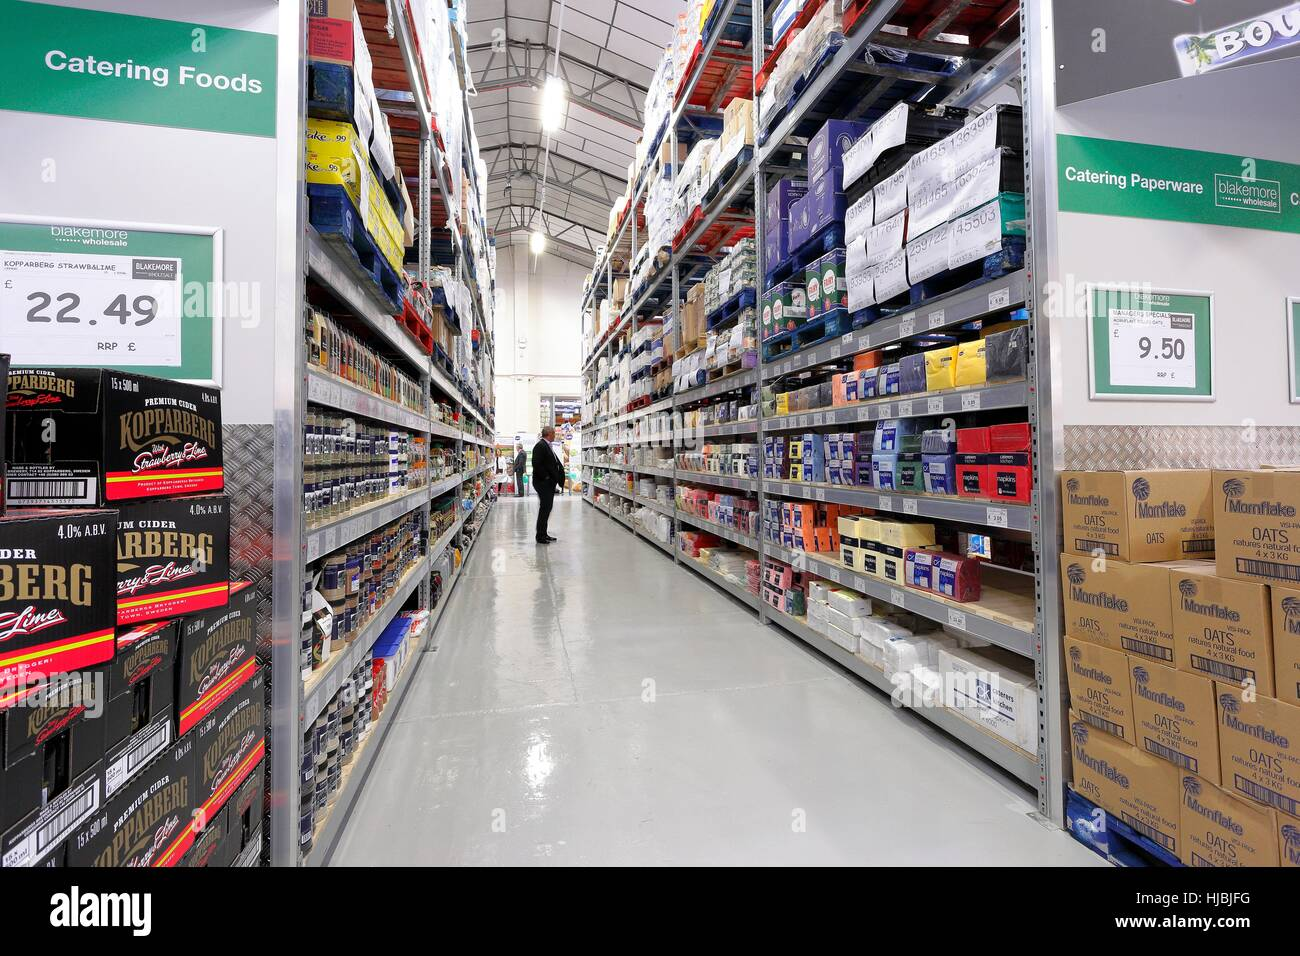 Man standing in aisle of the dry goods section of a wholesaler. - Stock Image